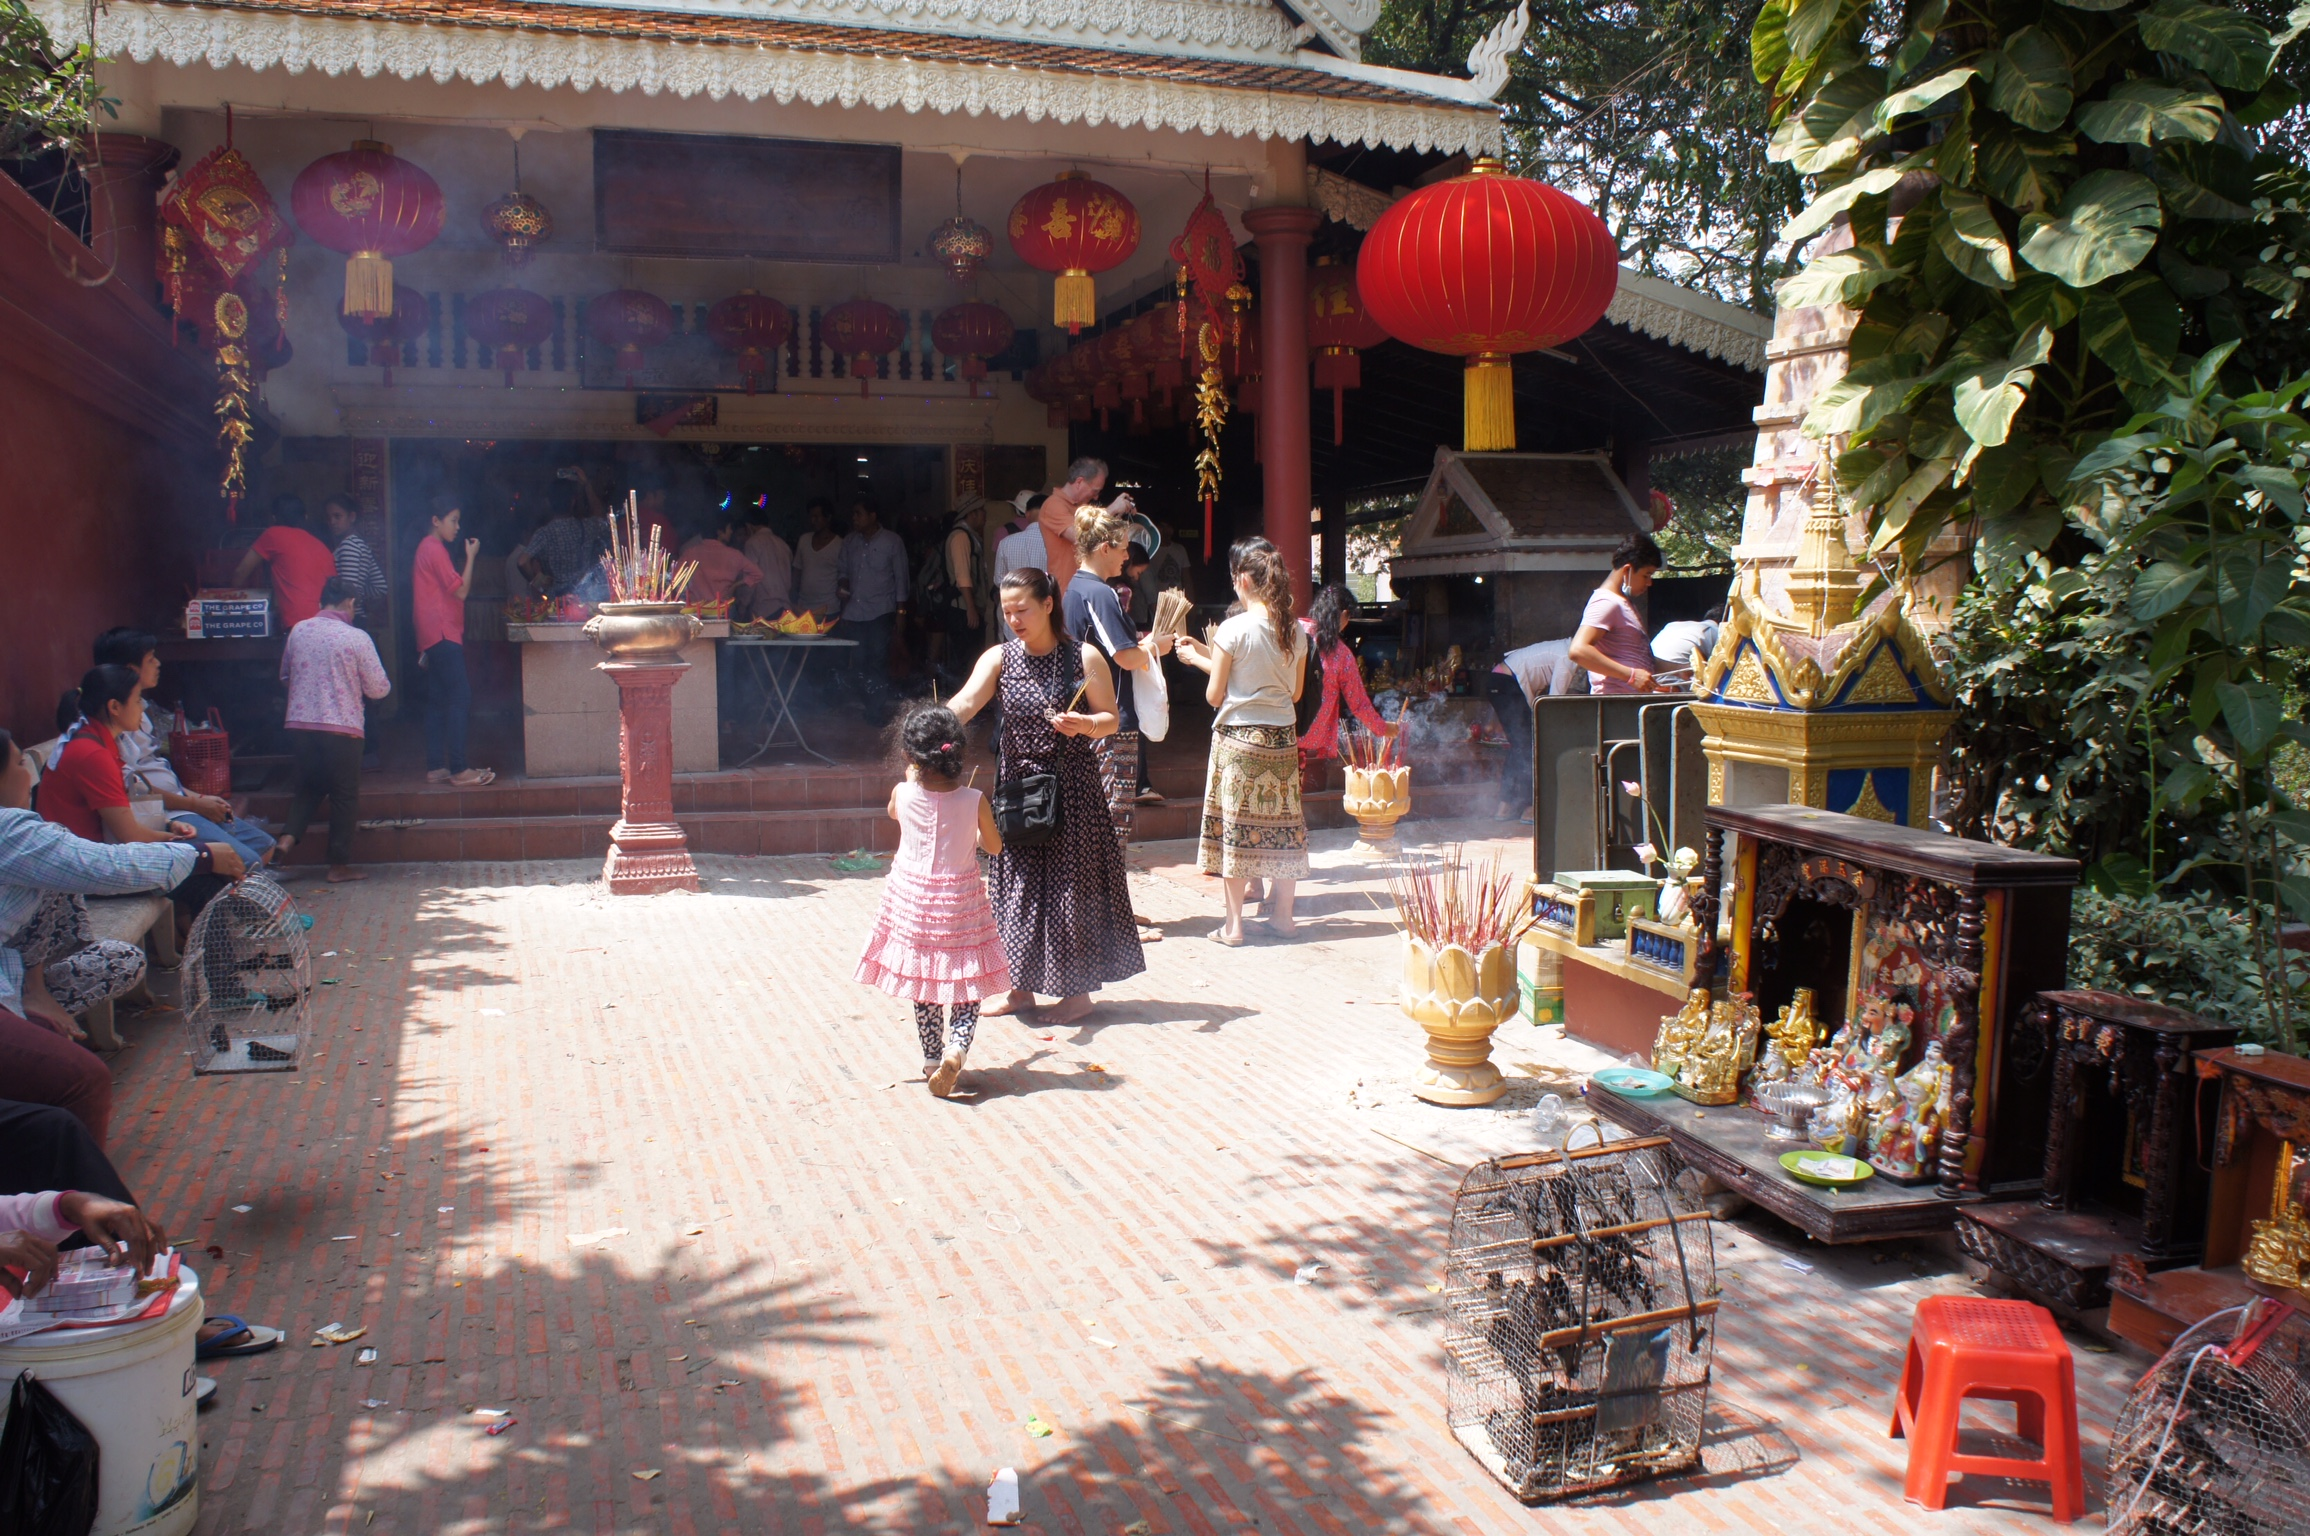 Celebrations for the Lunar New Year at Wat Phnom. To the right, is the furnace for burning replicamoney and forefront is a cage of birds, one of which you can hold and release for a fee. The birds typically return after they've been set free and are sold again.